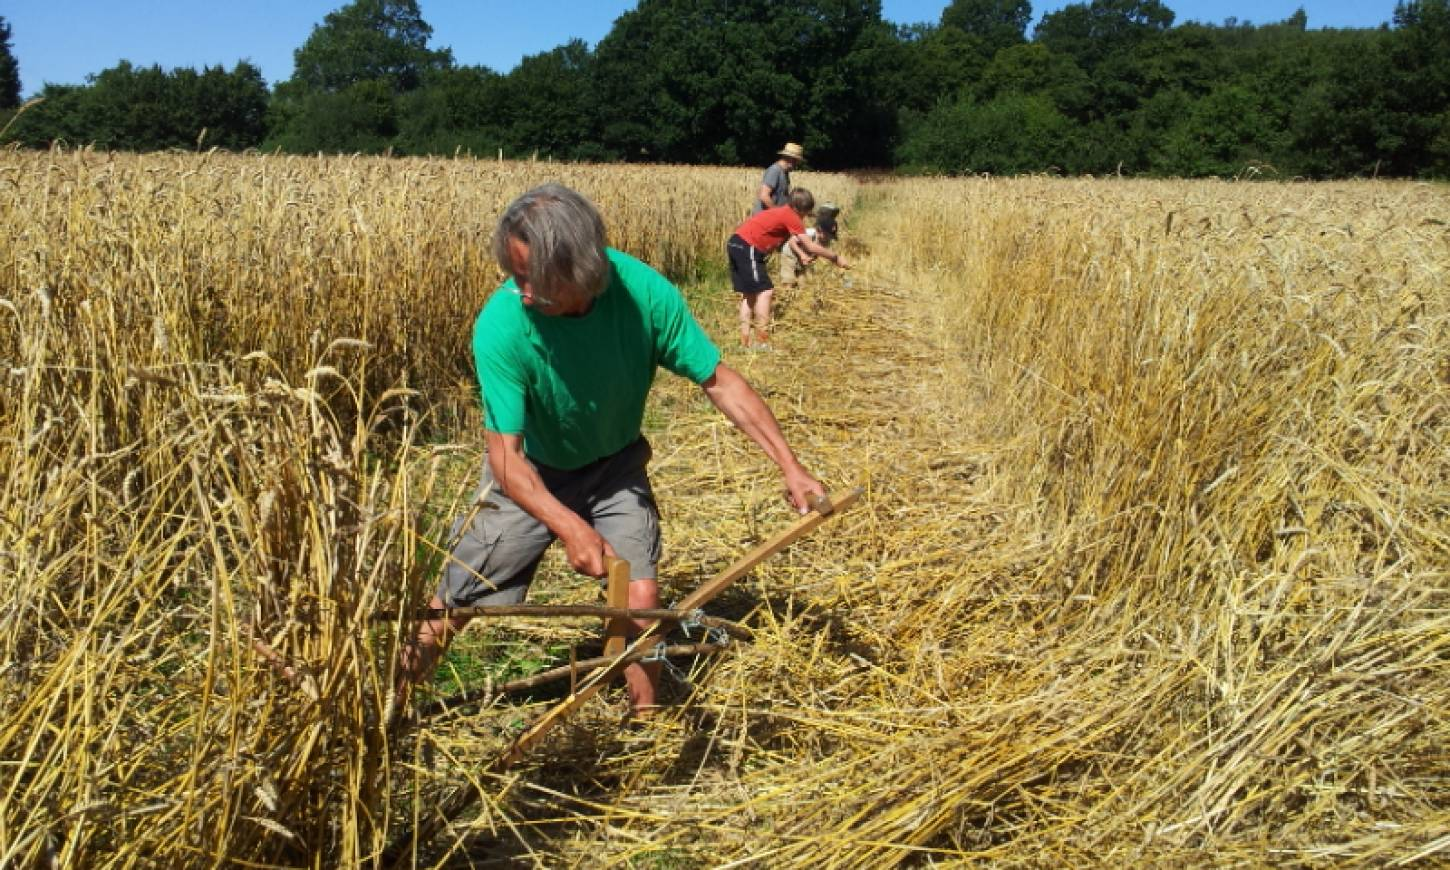 WoWo manual harvest pic: Ann Bodkin, scything - 11:03am&nbsp;9<sup>th</sup>&nbsp;Aug.&nbsp;'15